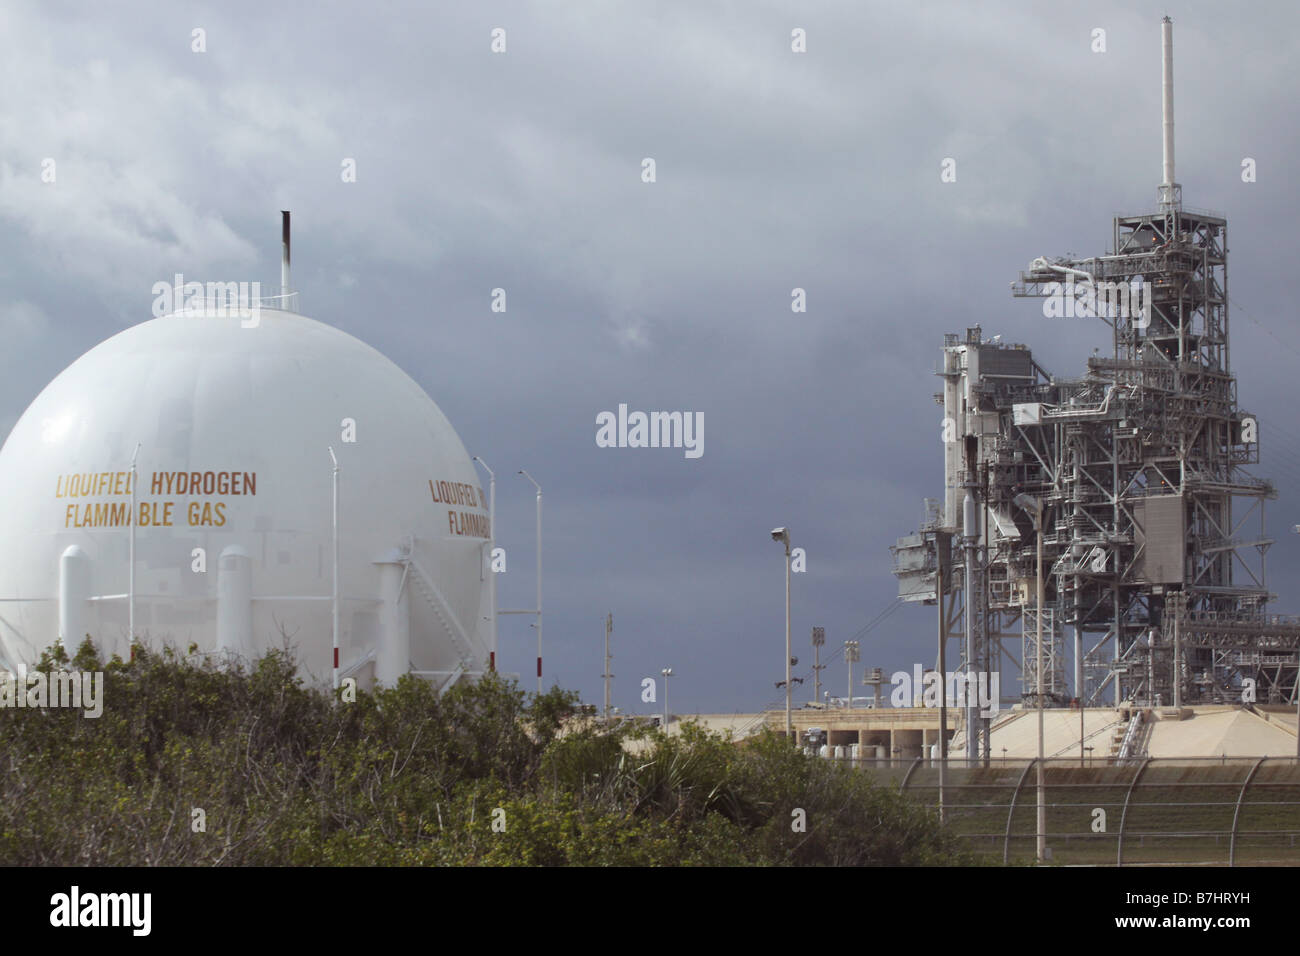 NASA Launch Pad 39B Kennedy Space Center Cape Canaveral Hydrogen tank - Stock Image